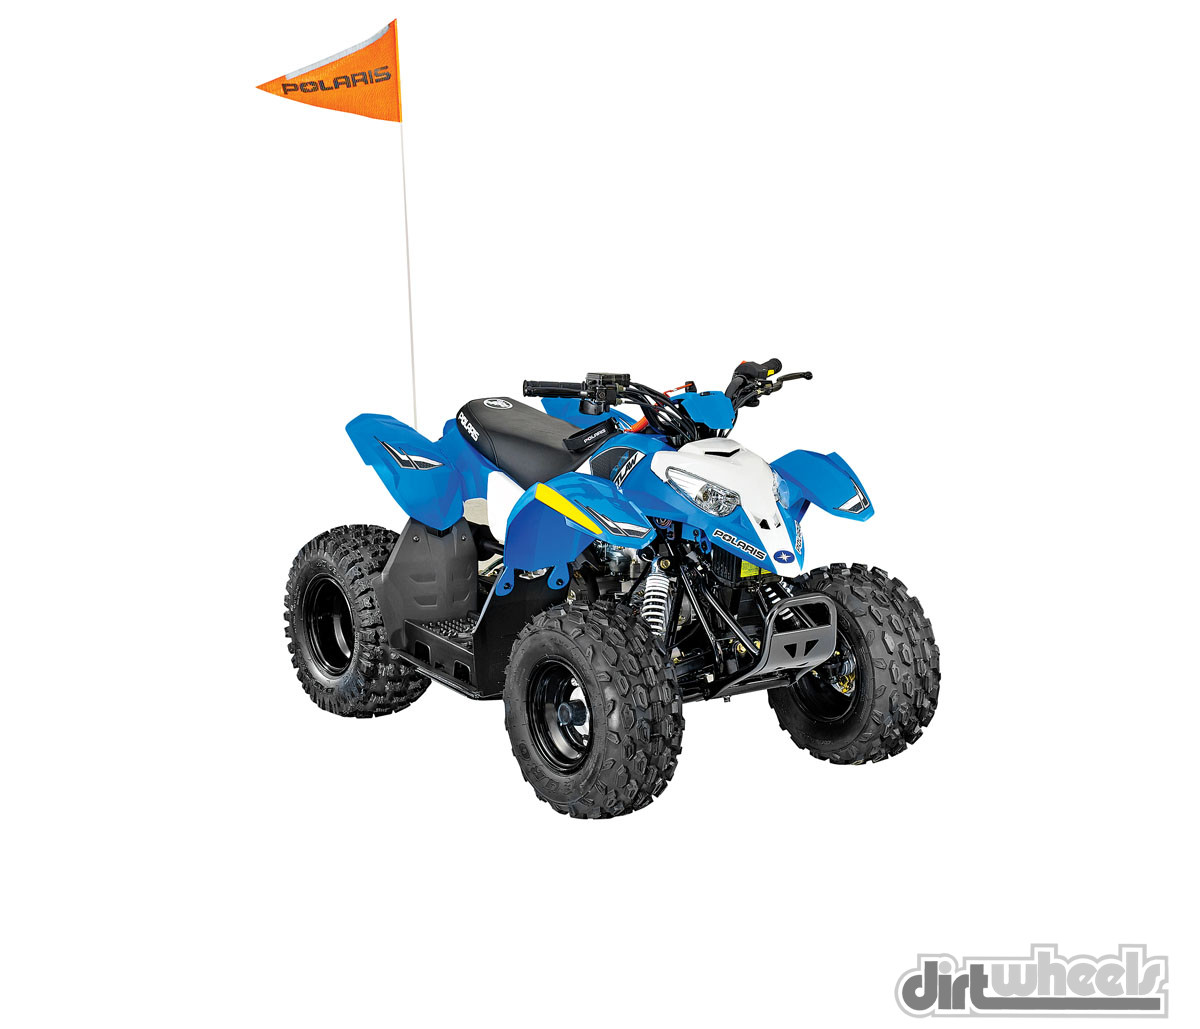 2015 Youth Quad Buyers Guide Dirt Wheels Magazine 50 And 70 Atv Wiring Diagram 11b Polaris Outlaw 50web